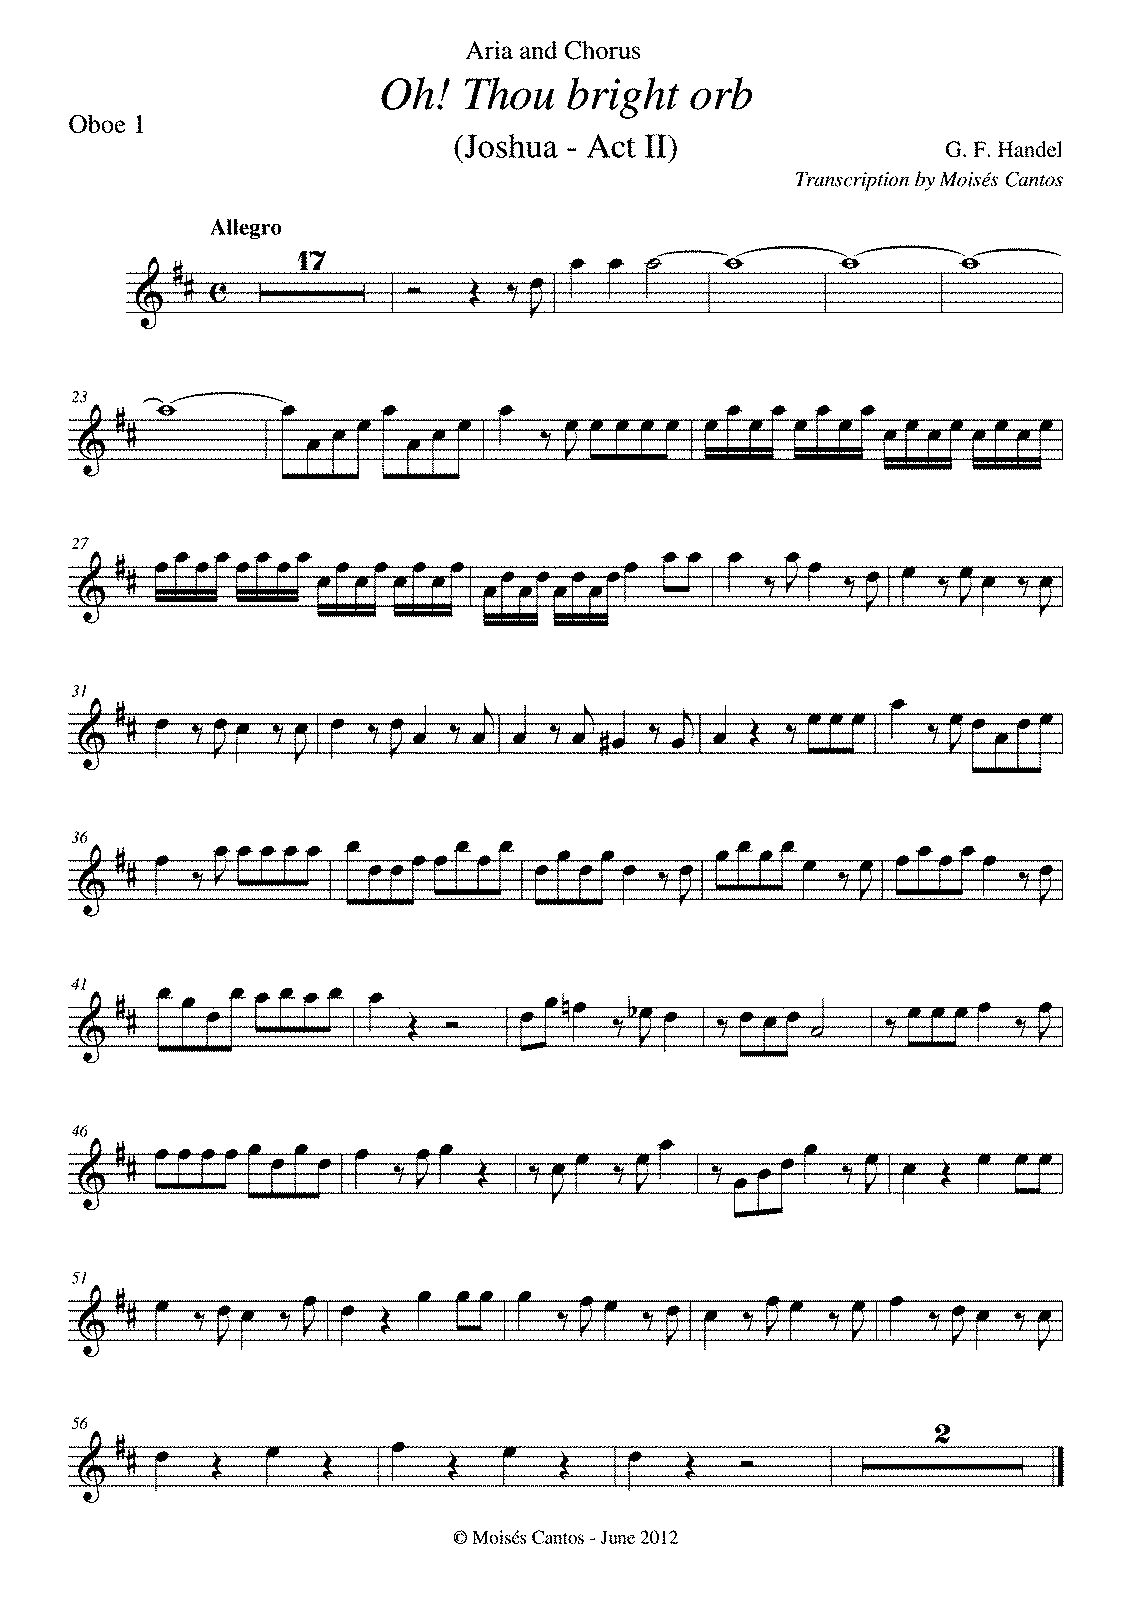 PMLP44492-Oh Thou bright orb - Oboe 1.pdf